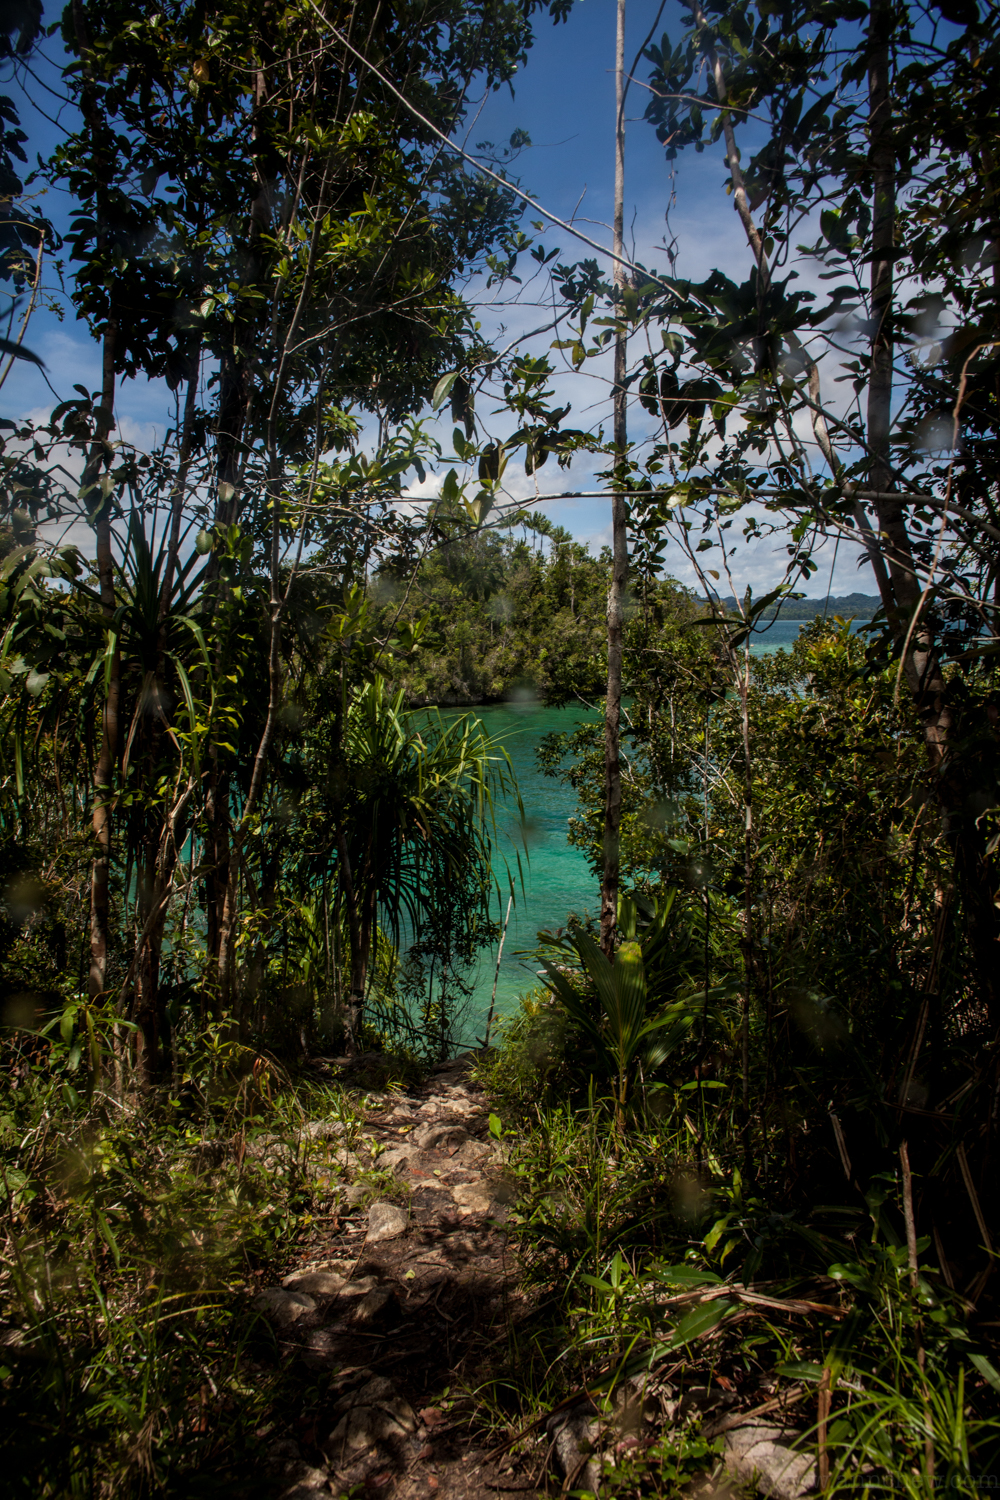 Just a short hike through the jungle!